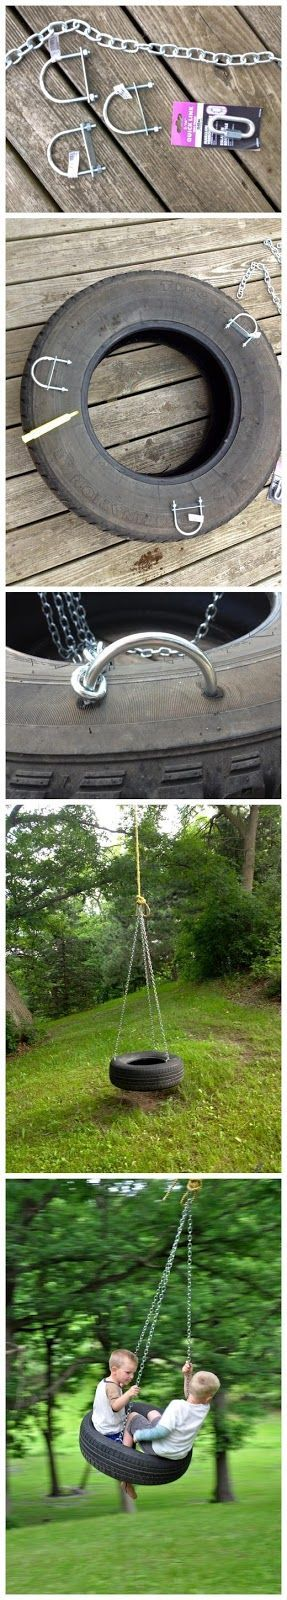 How To Make An Old Fashioned Tire Swing Project » The Homestead Survival